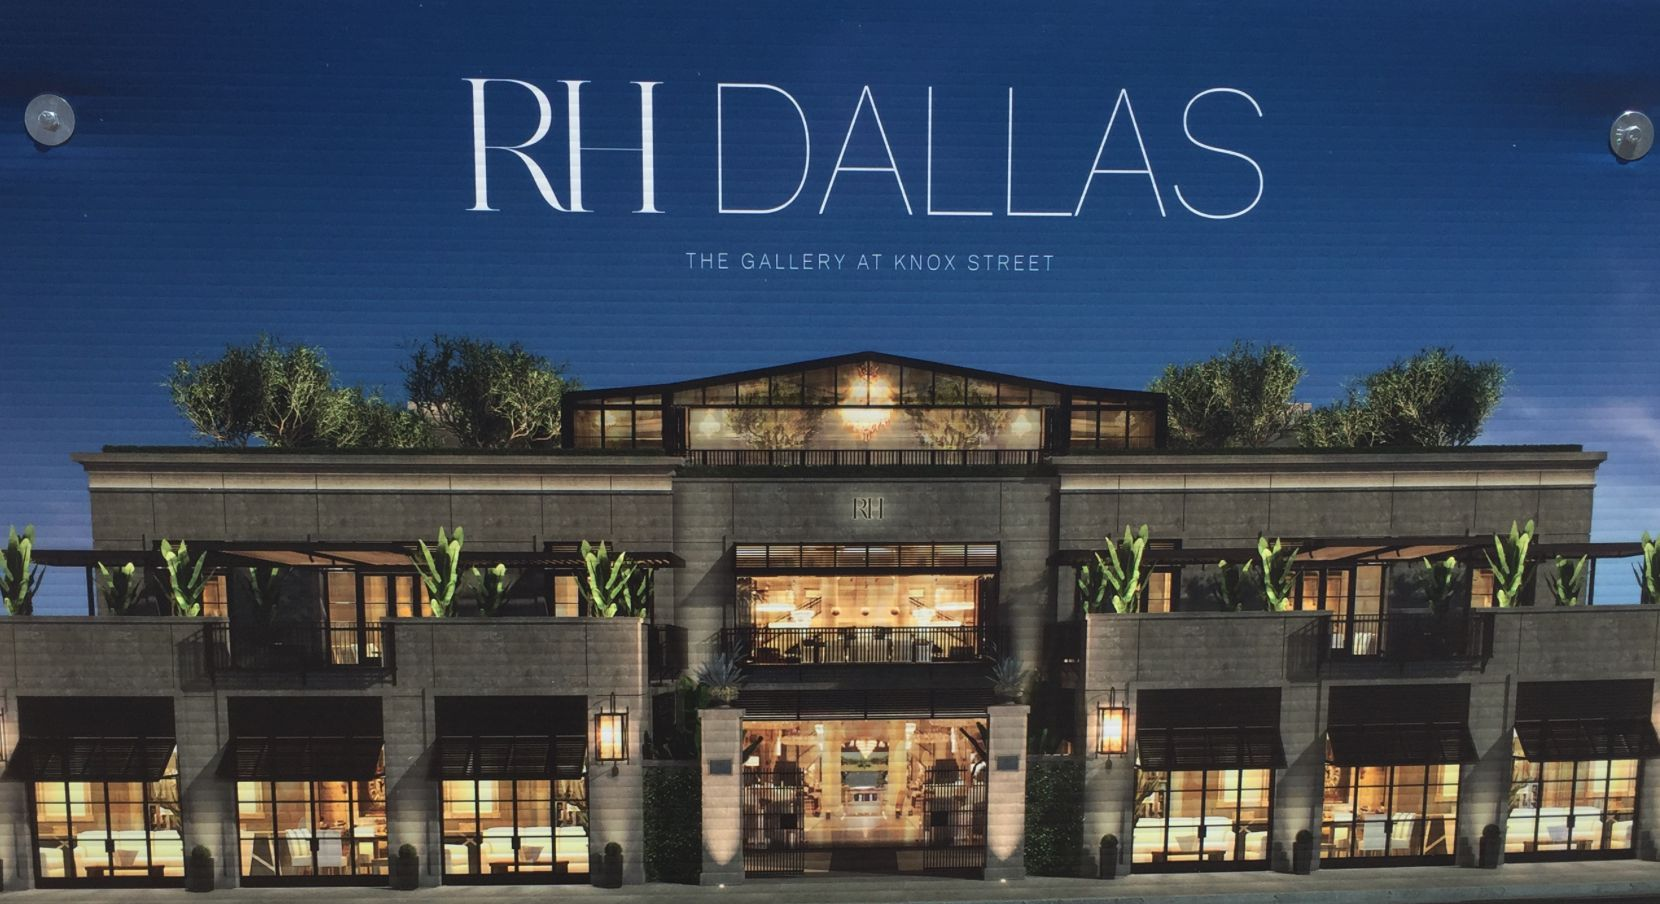 Restoration Hardware has posted renderings for the new Knox Street store on the construction fence  around the site.